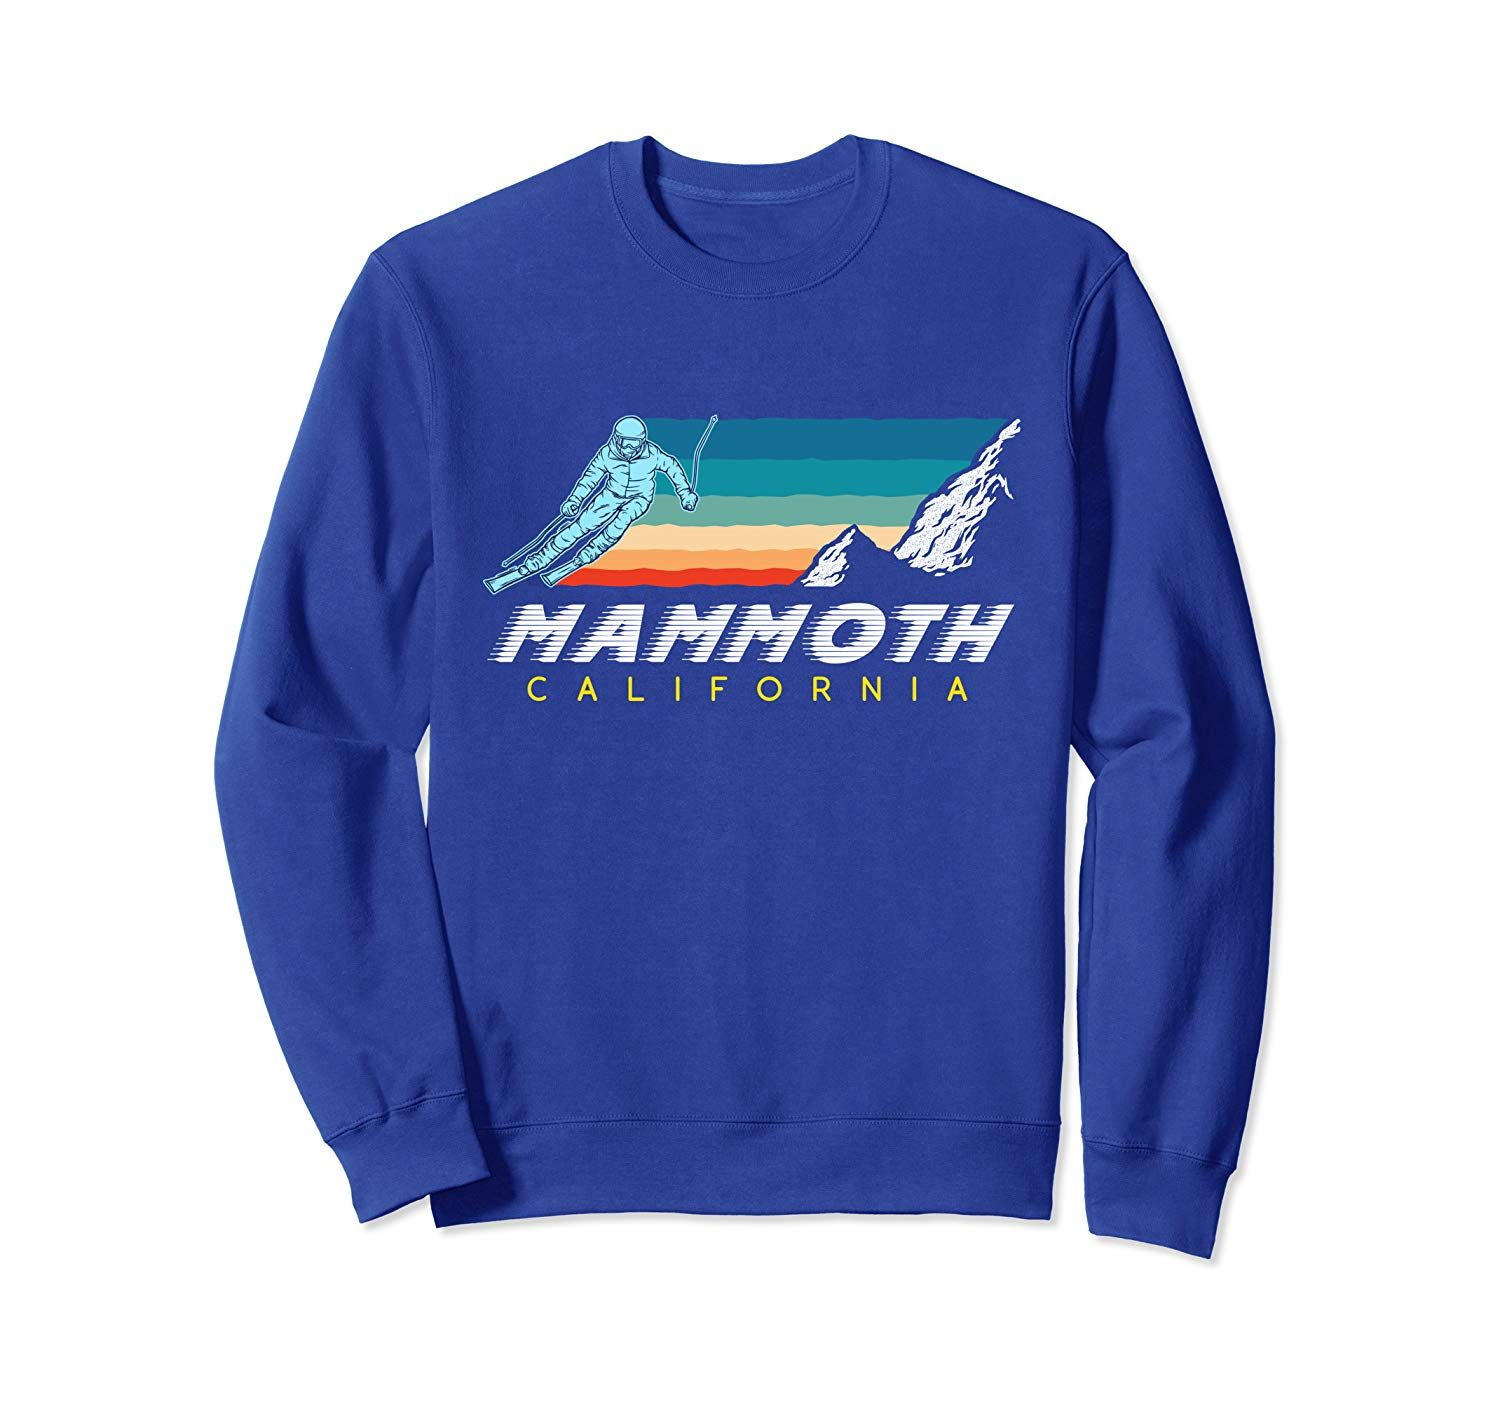 Mammoth California - USA Ski Resort 1980s Retro Sweatshirt #utahusa